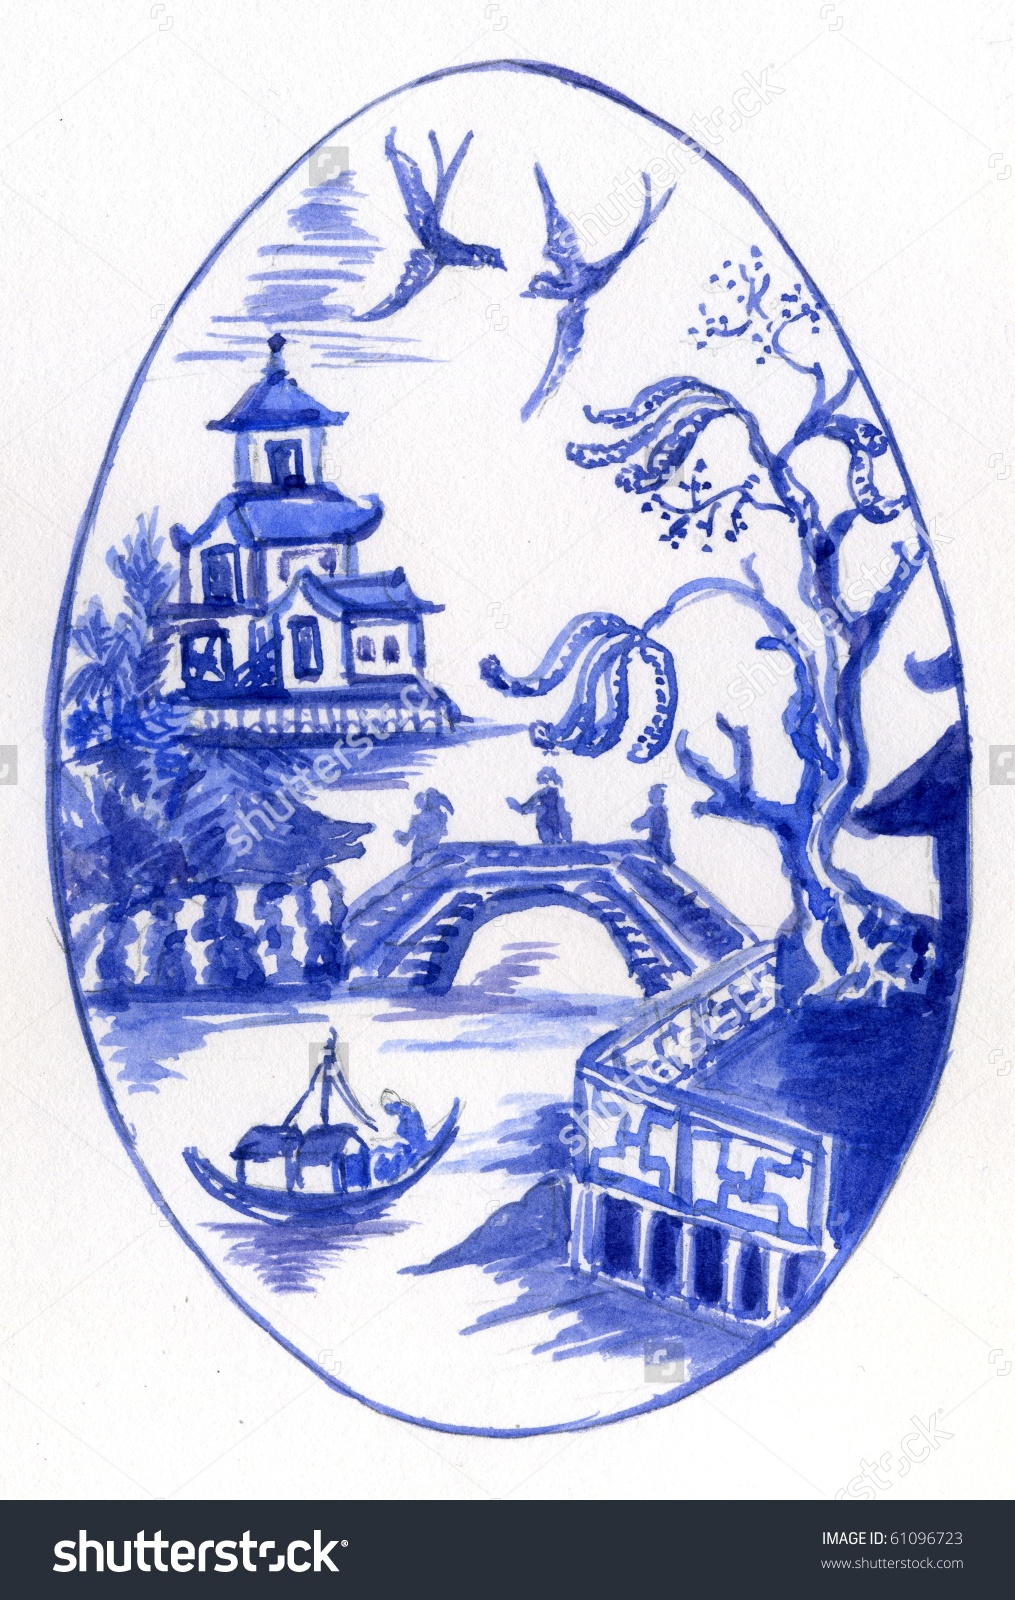 Cute Free Wallpapers For Android Download Blue Willow Pattern Wallpaper Gallery